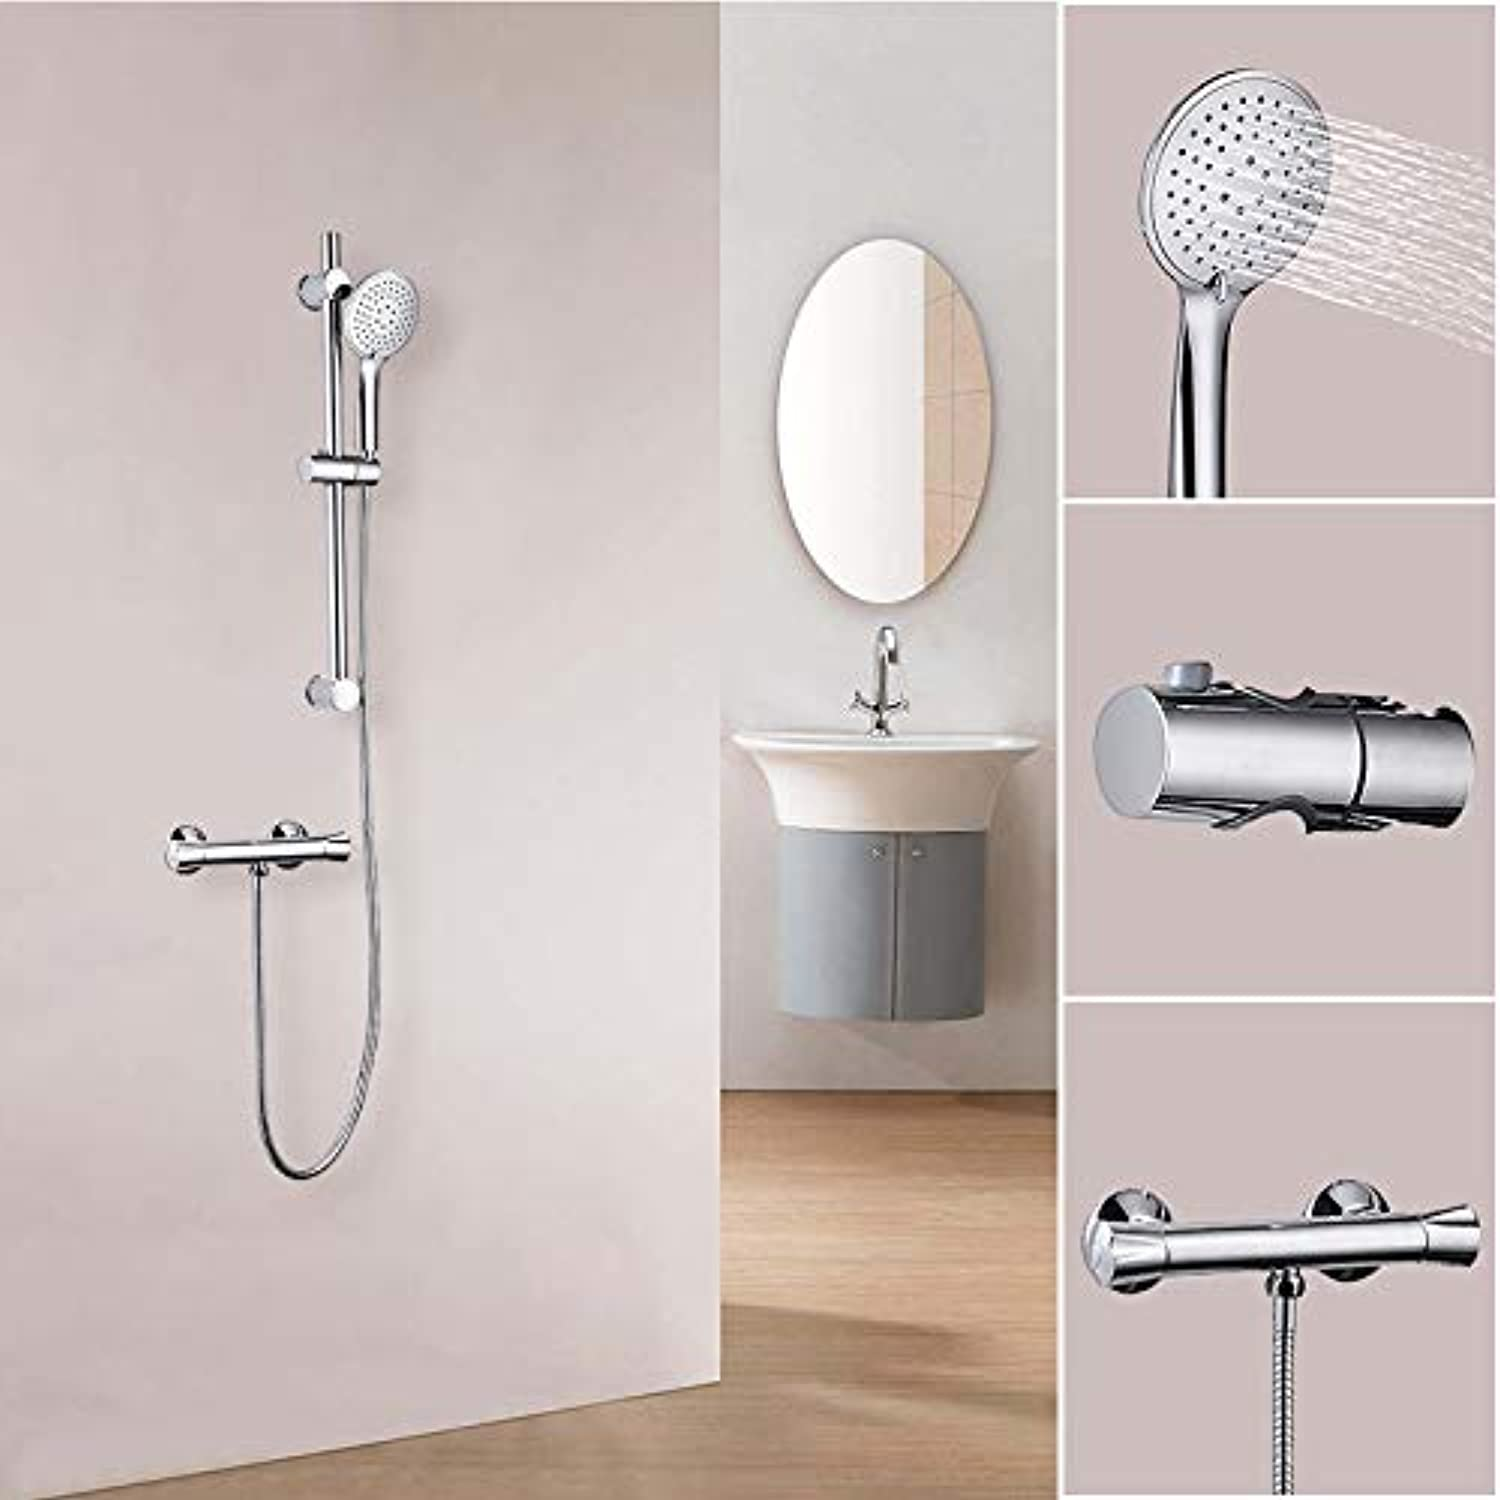 Aica Sanitary Shower Fittings Bathtub & Shower Systems, Duschthermostat+Handbrause